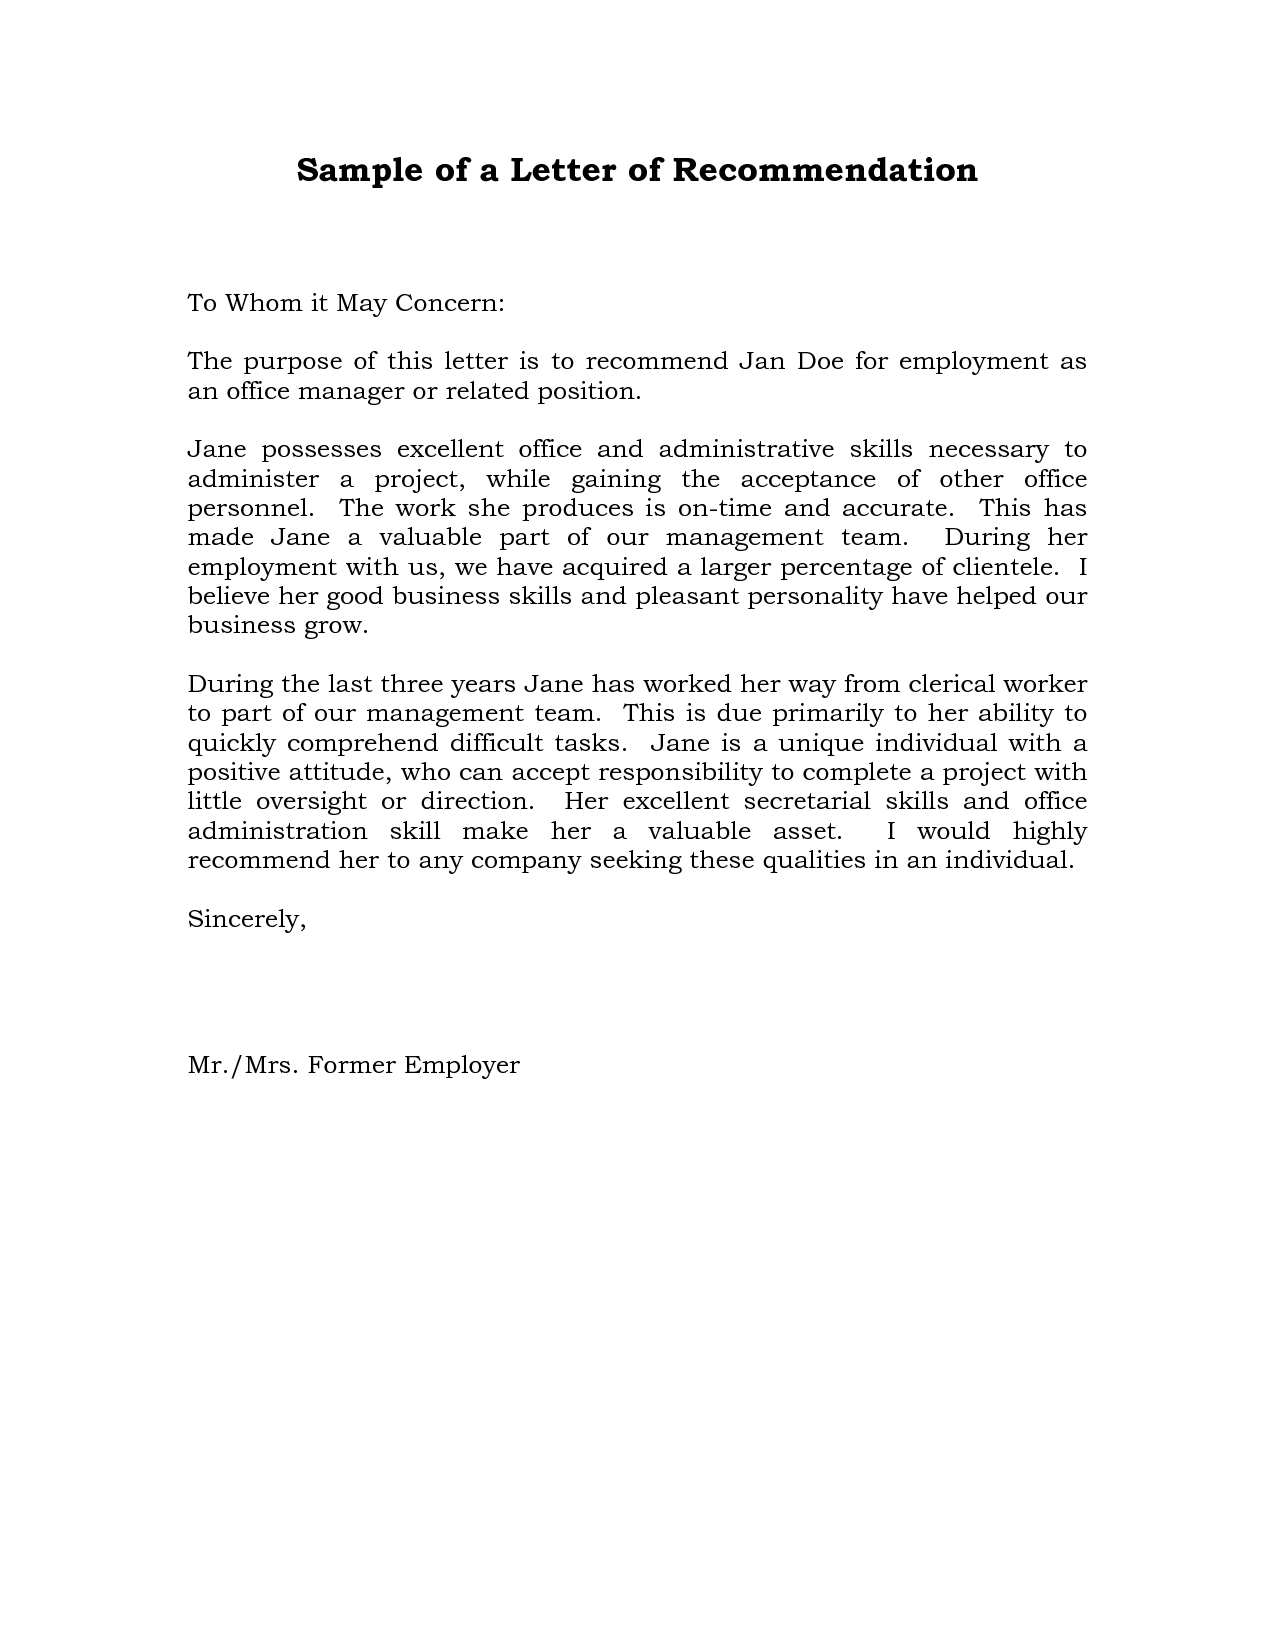 letter of recommendation samples for employment best 25 letter of recommendation format ideas on 23058 | abfc61d886ea9a1b9d41085e567df02f